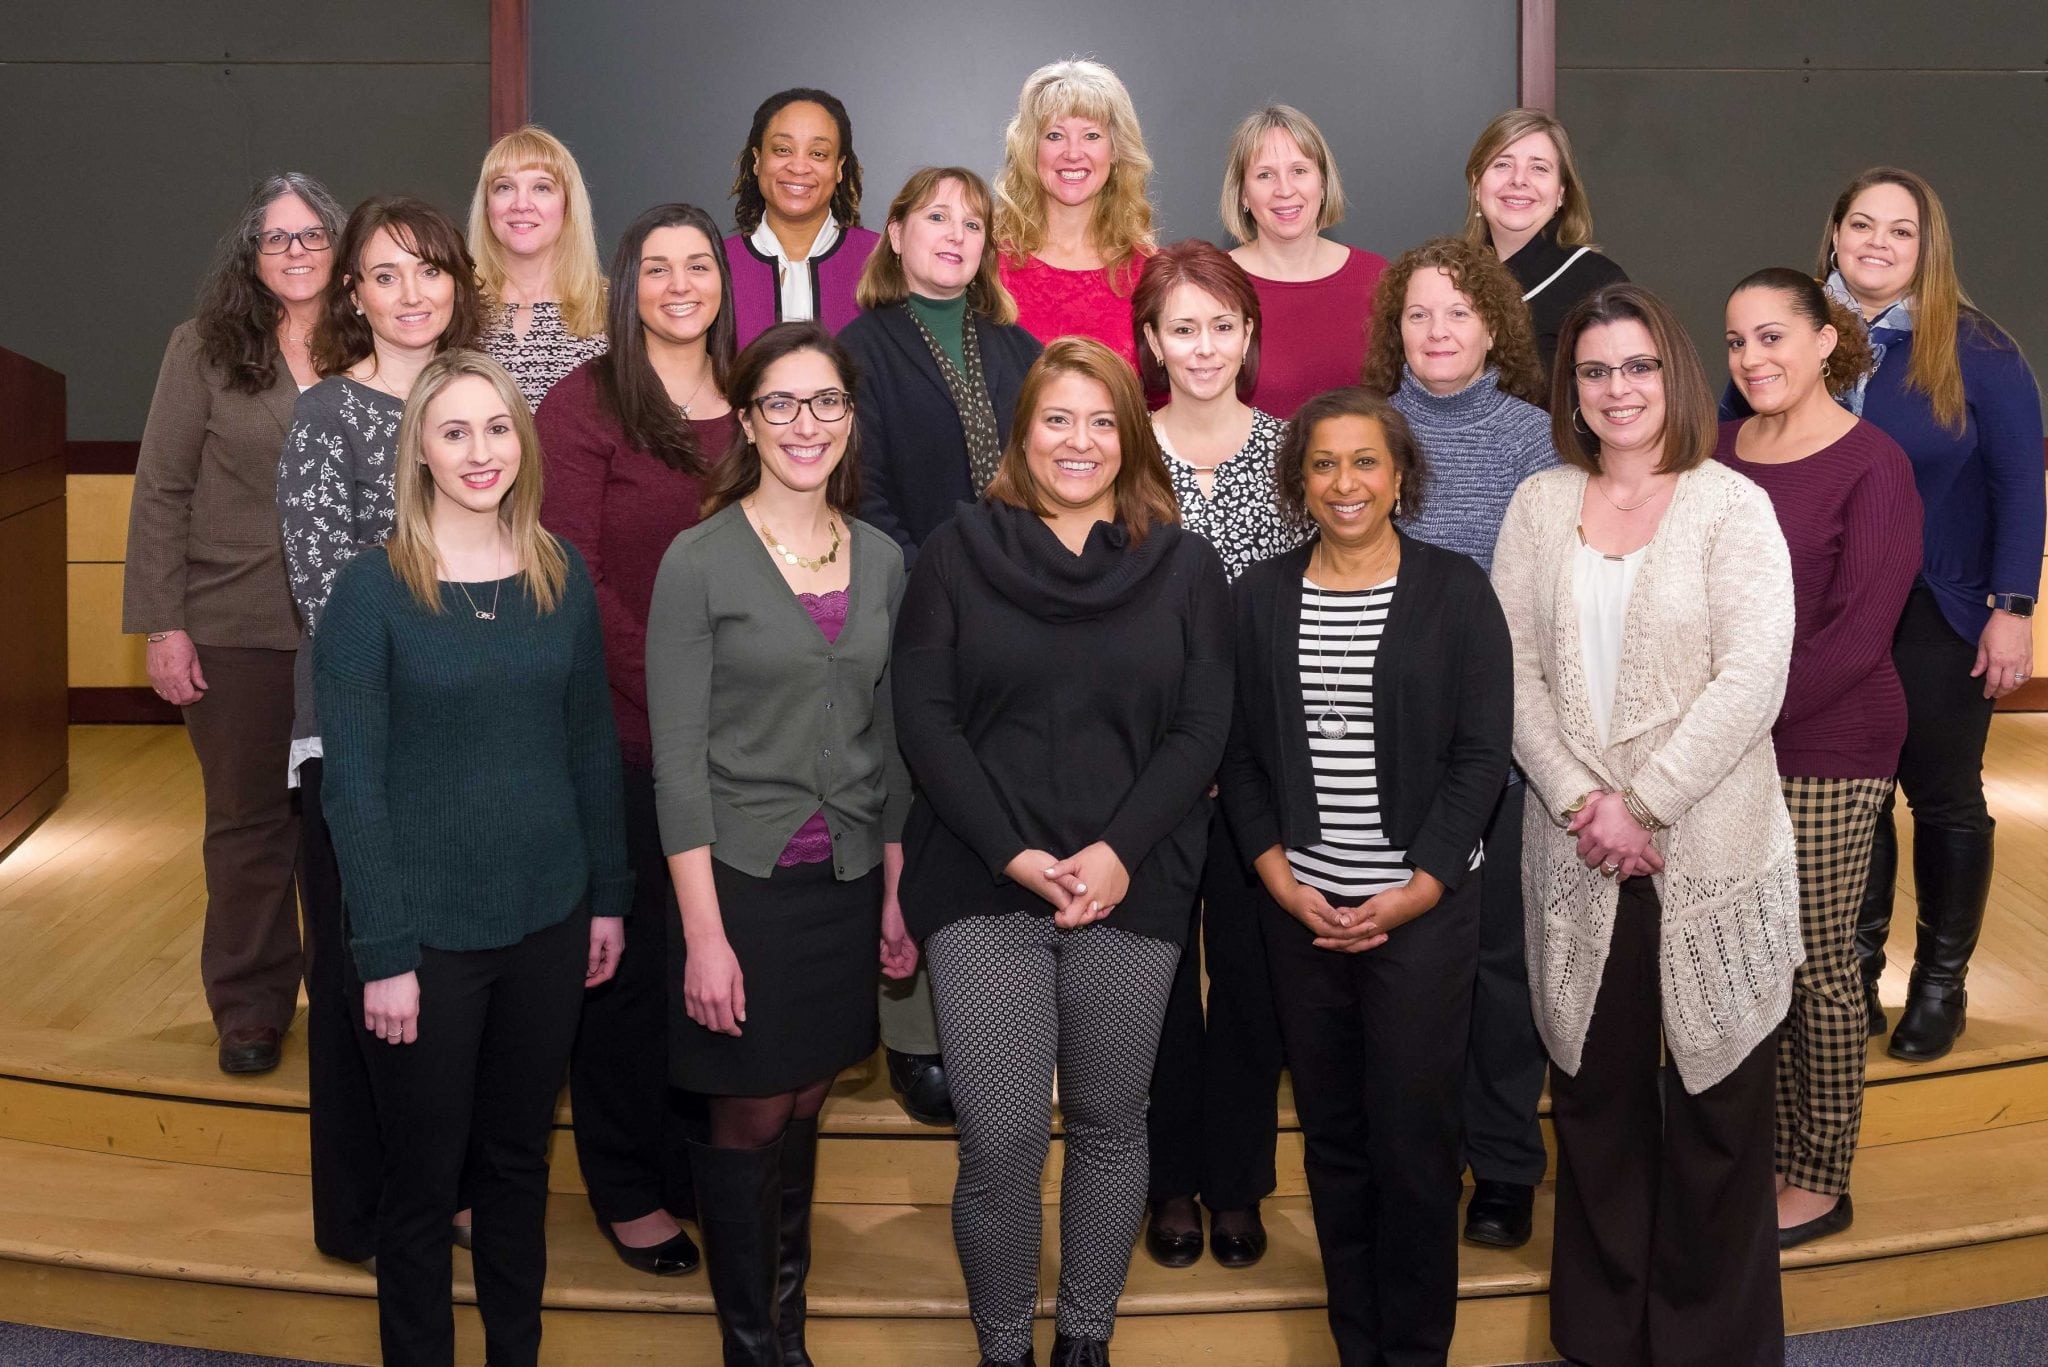 Hospital Social Workers Leaders Champions And Patient Advocates